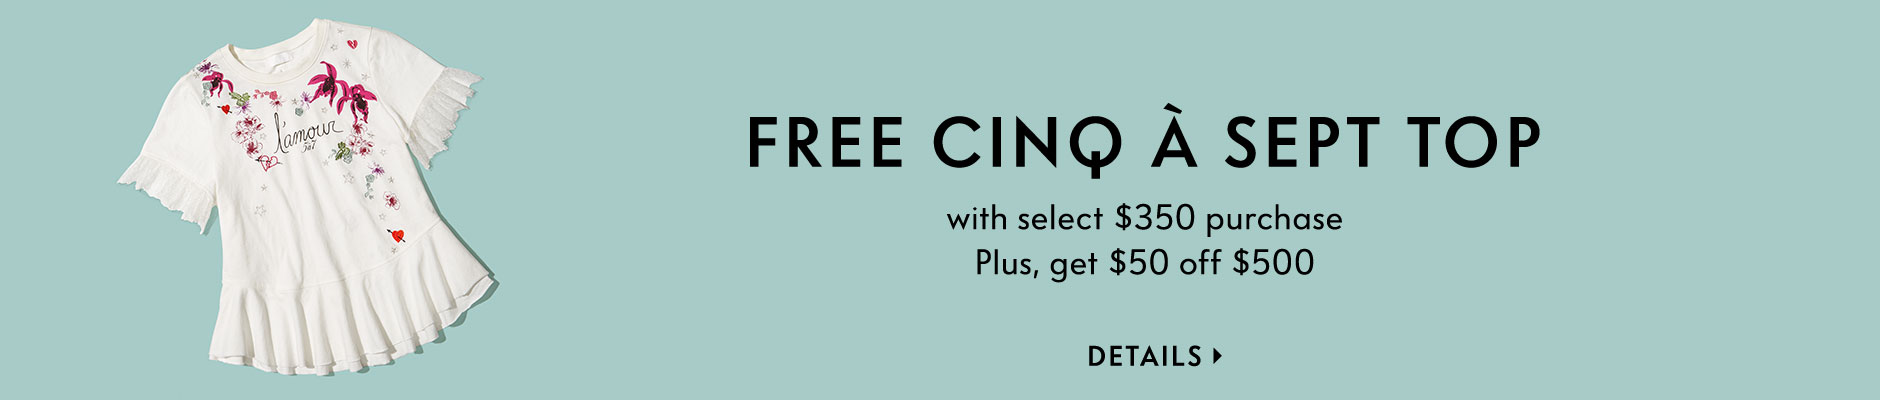 Free Cinq a Sept Top with select $350 purchase - Plus, get $50 off $500